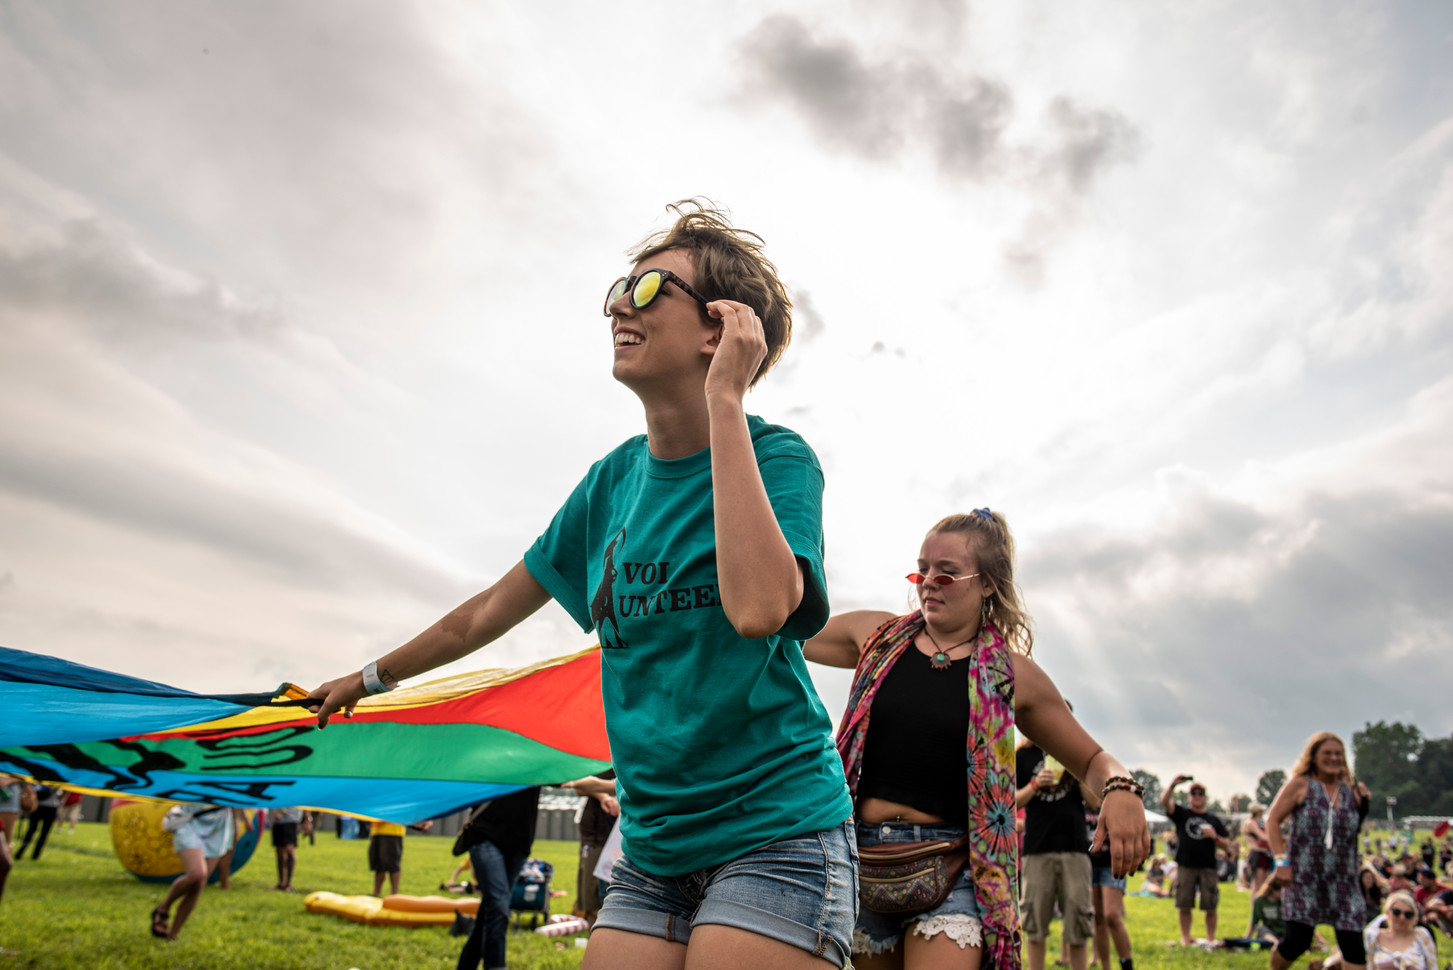 Fans at Bellwether Music Festival have fun with the Roochute, an organization that attends different music festivals to promote positive talks about mental health.